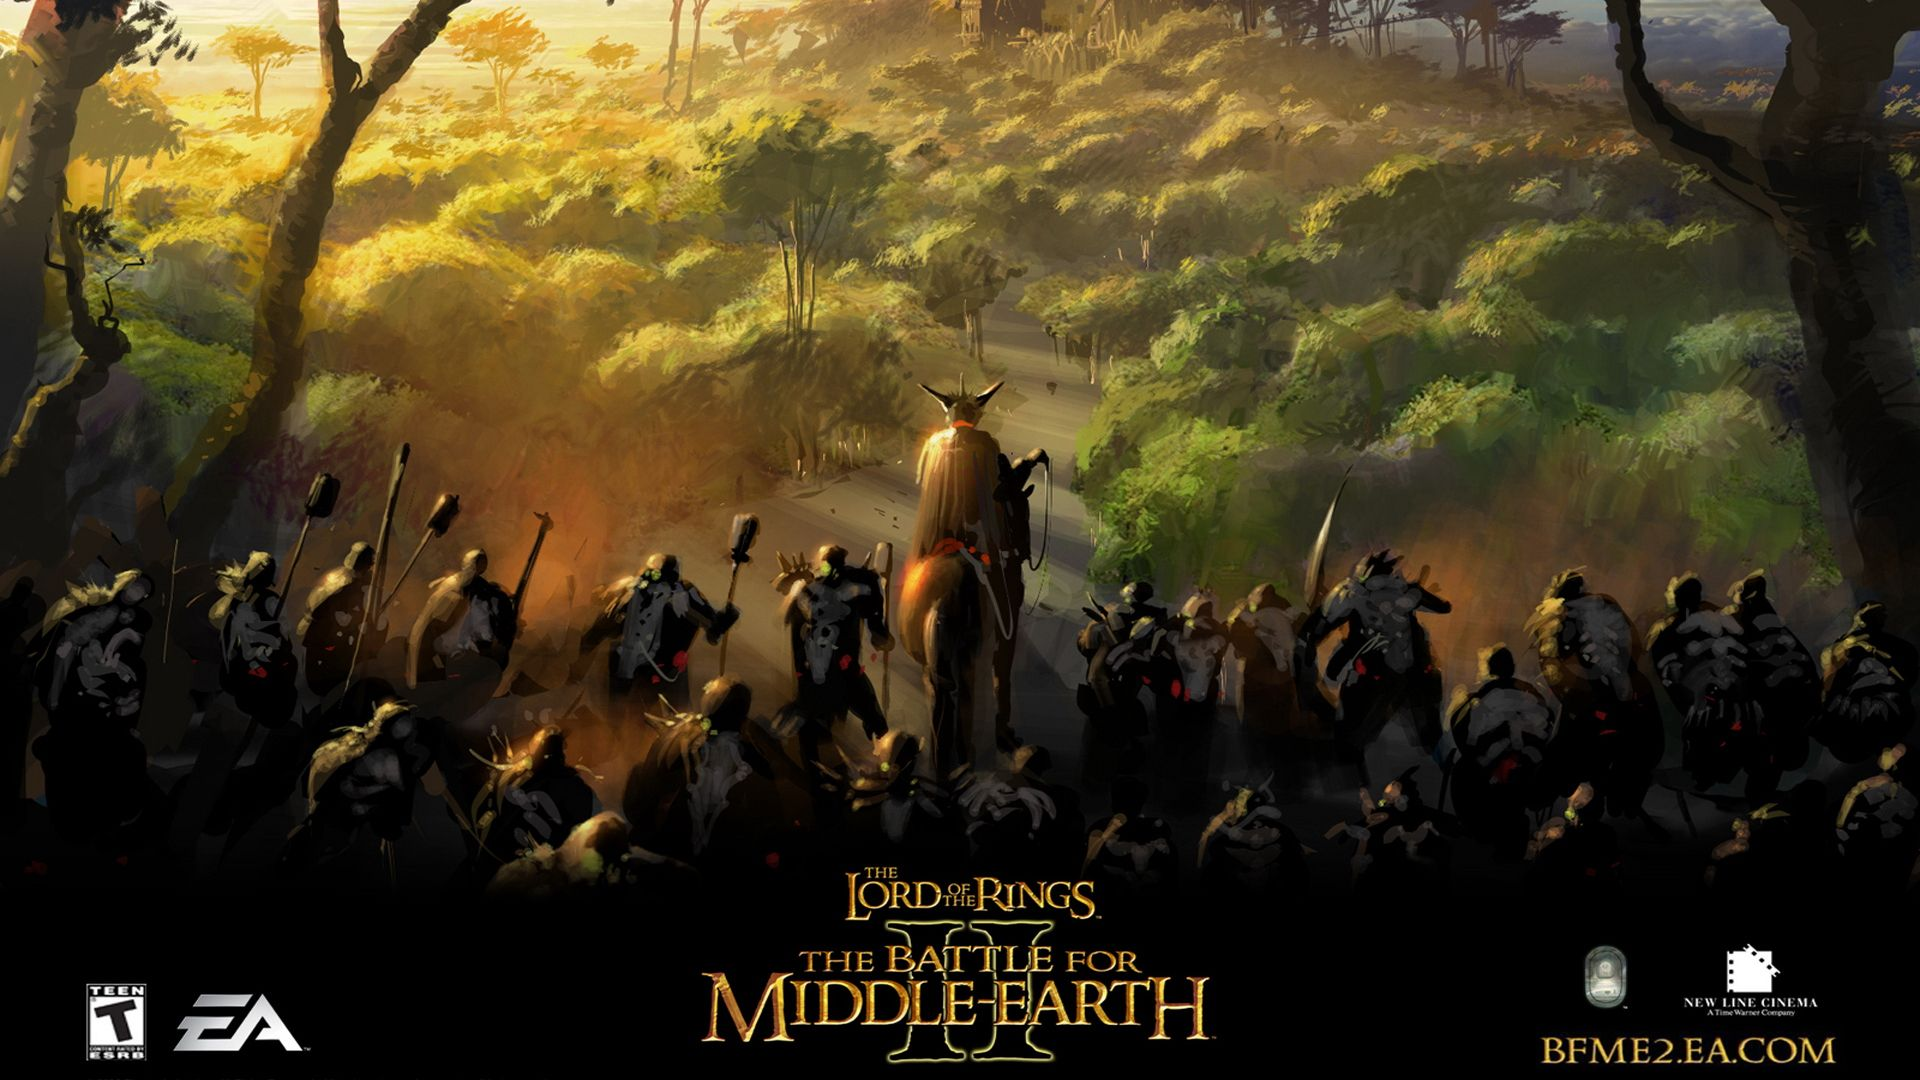 Pin by Asad Osmani on Tolkien's Realm | Middle earth, Lord of the rings, Middle earth games